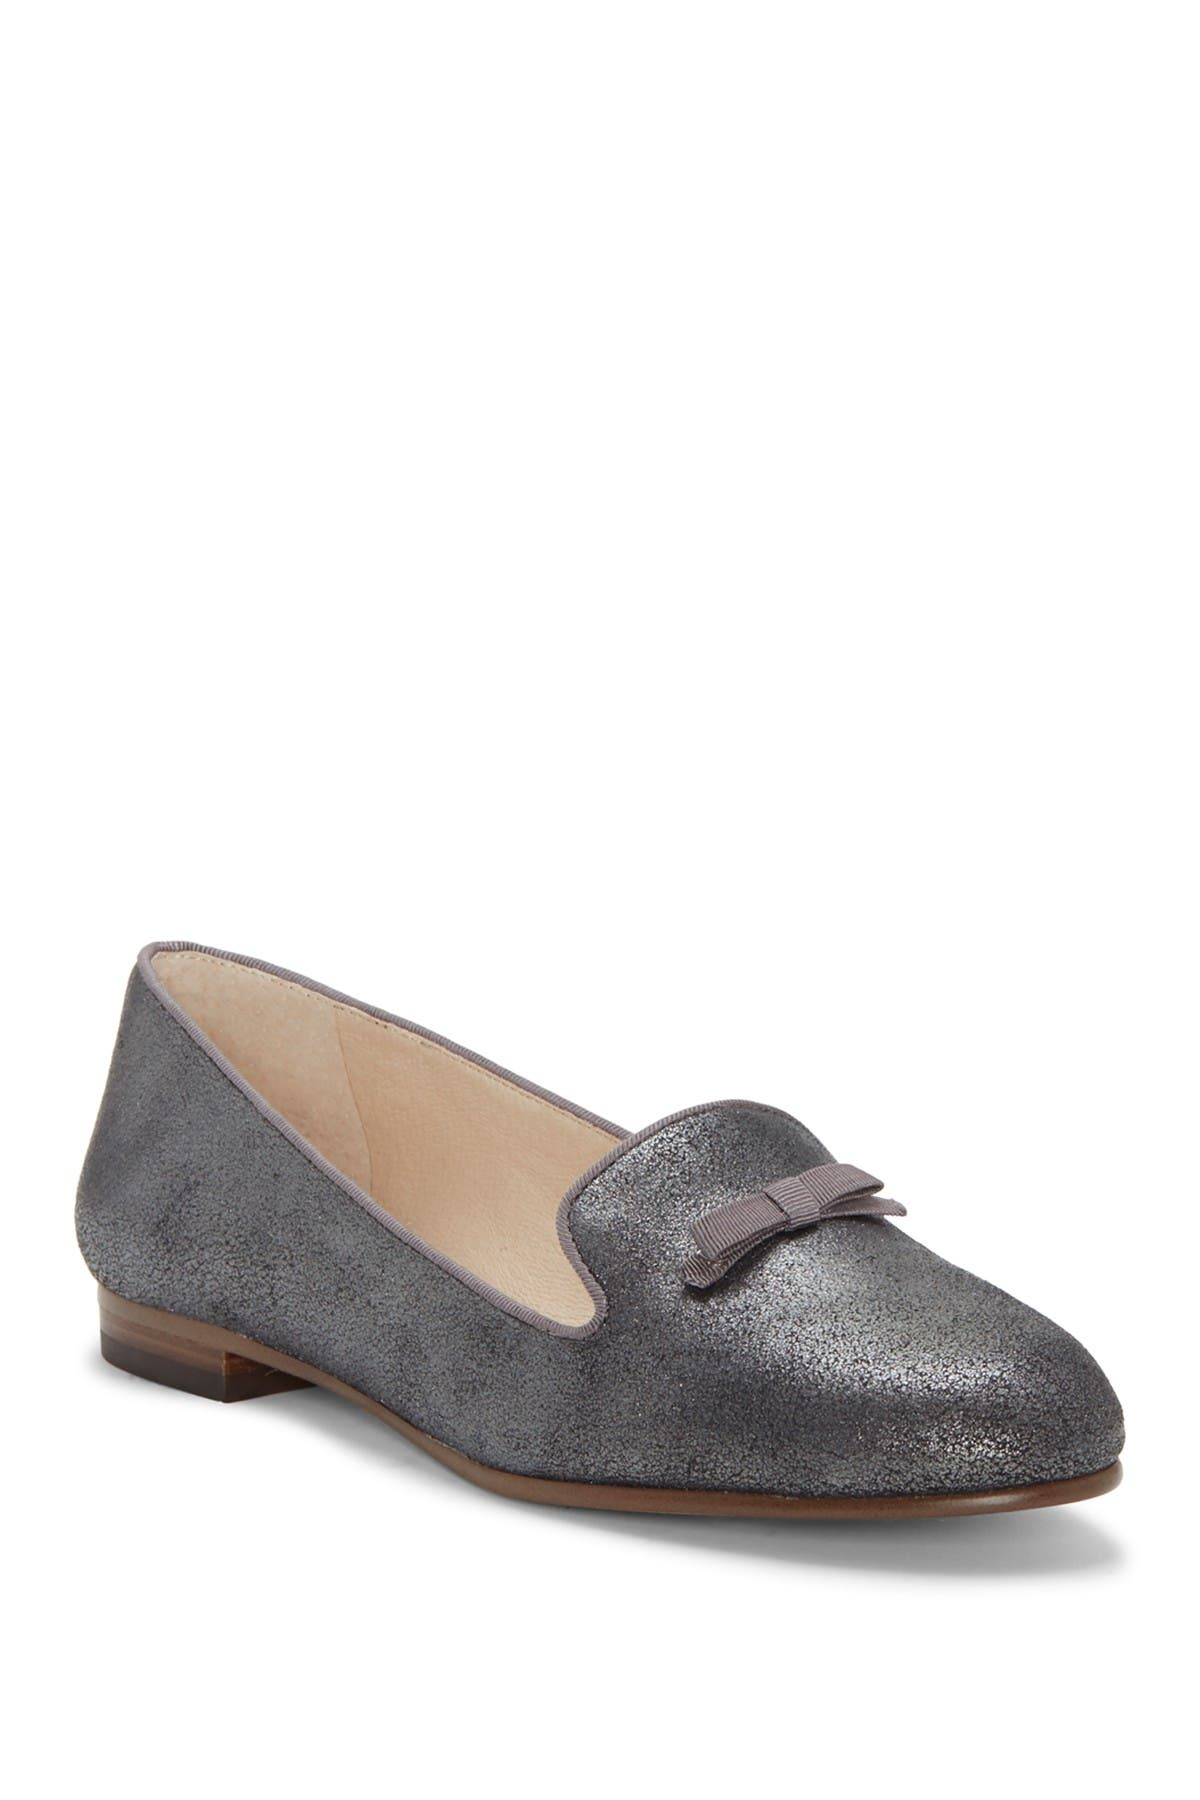 Image of Louise et Cie Anniston Bow Loafer